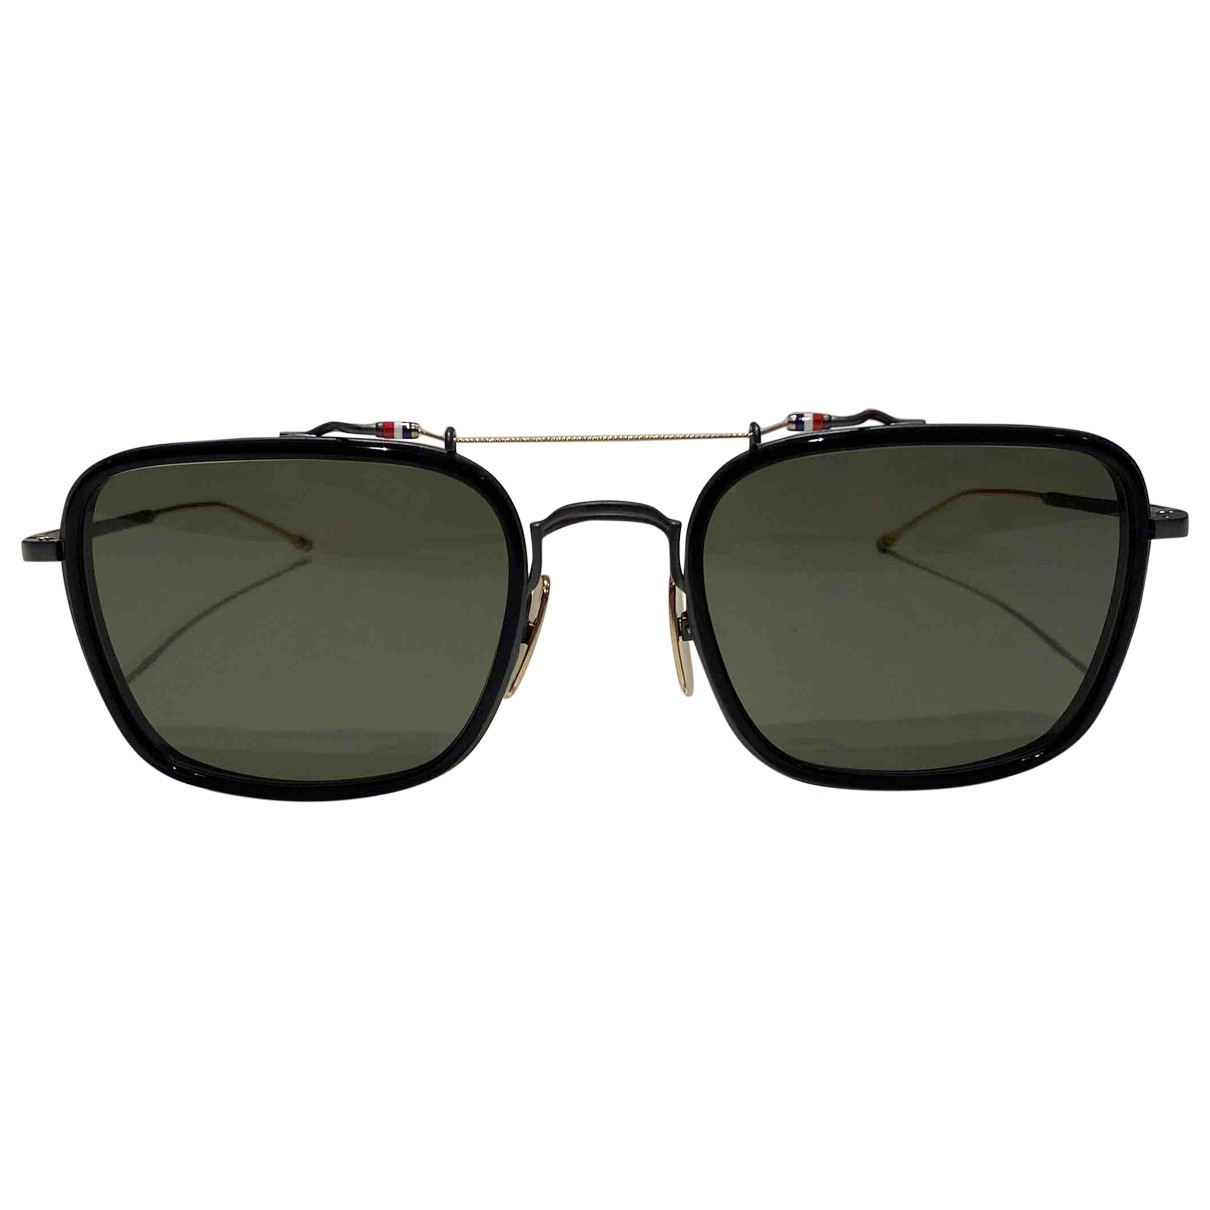 Thom Browne \N Black Metal Sunglasses for Men \N